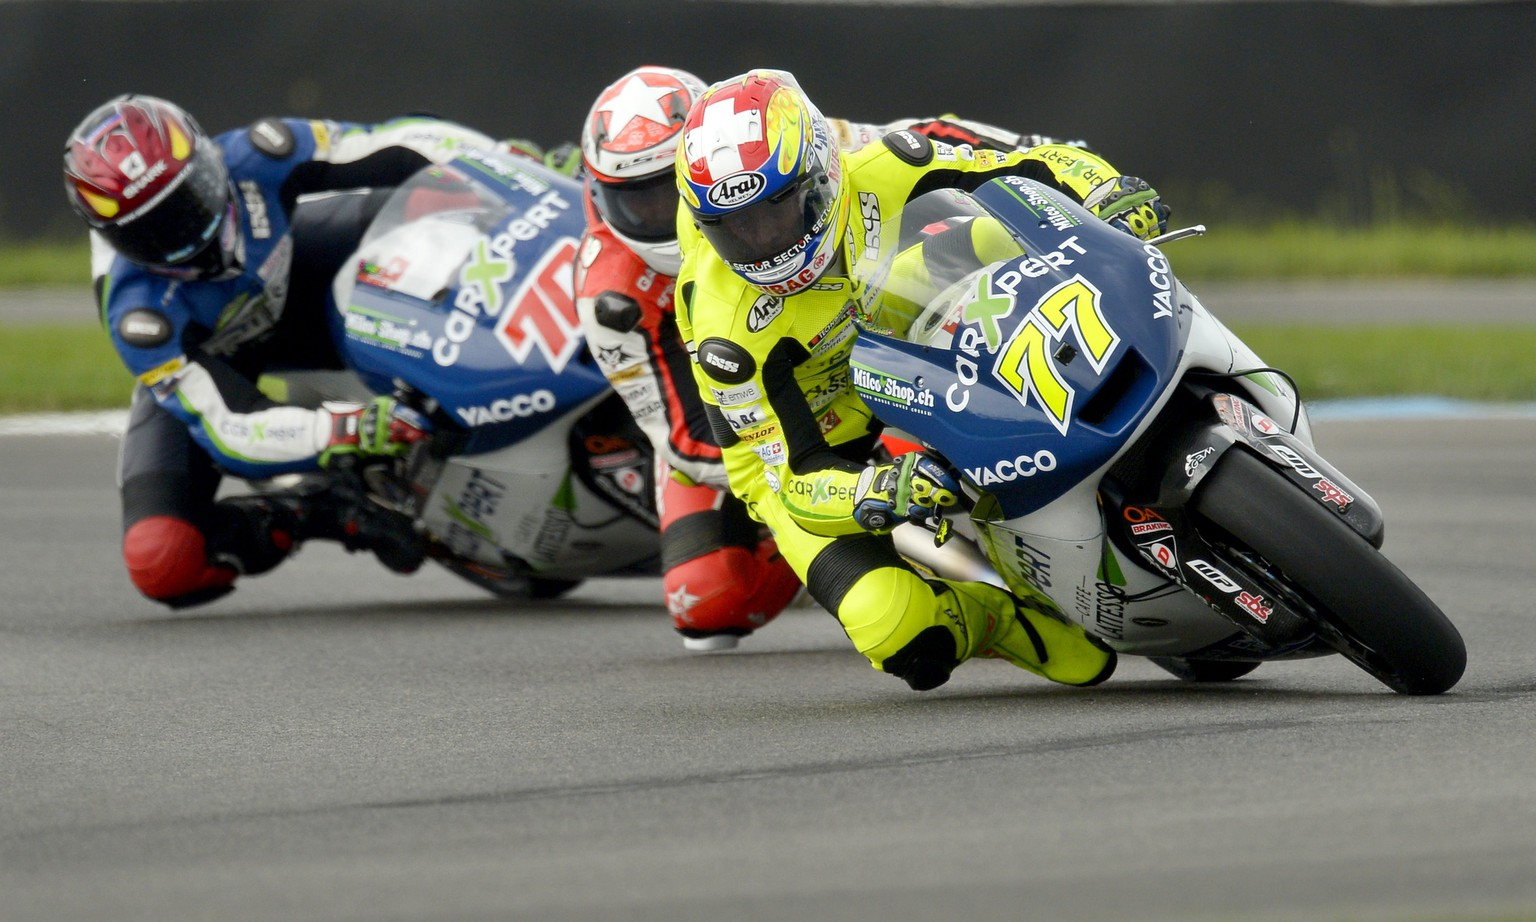 epa04347636 Technomag carXpert team rider Dominique Aegerter of Switzerland navigates turn two, during Moto2 qualifying session at the Red Bull Indianapolis GP at the Indianapolis Motor Speedway in Indianapolis, Indiana, USA, 09 August 2014. Aegerter would qualify third fastest and will start the race on the front row.  EPA/PAUL BUCK